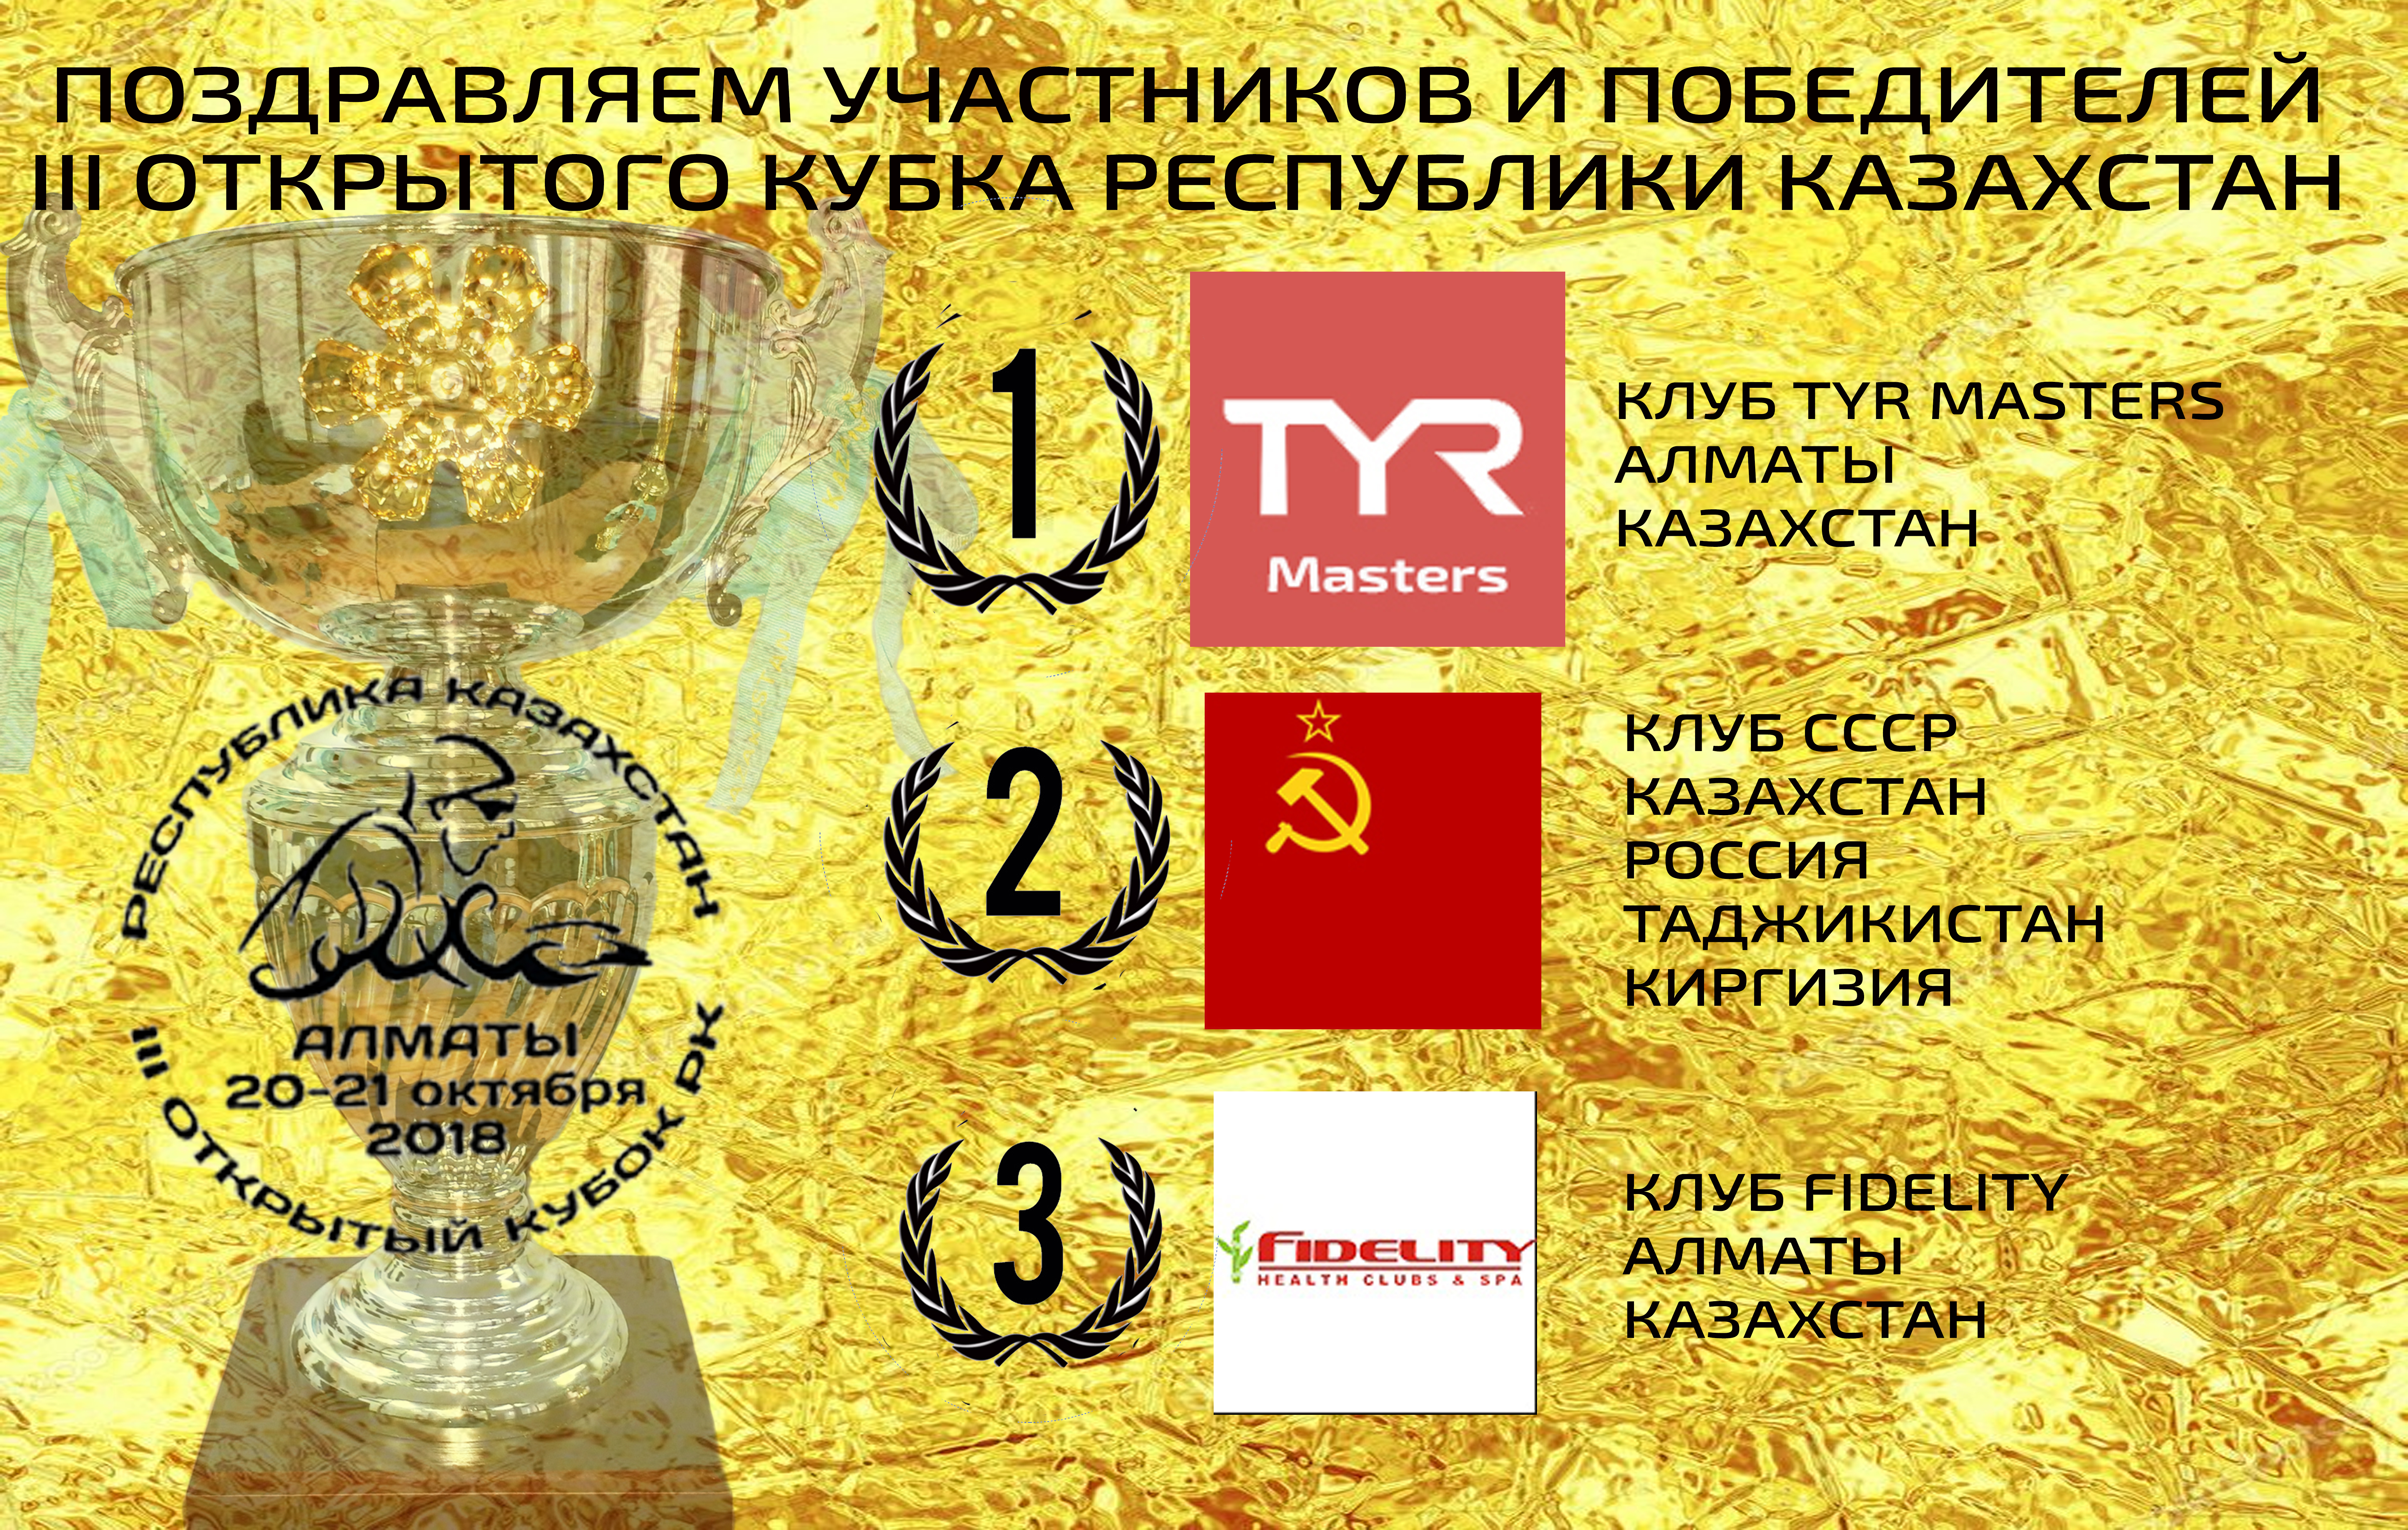 Results of the Kazakhstan Cup in swimming in the Masters category.